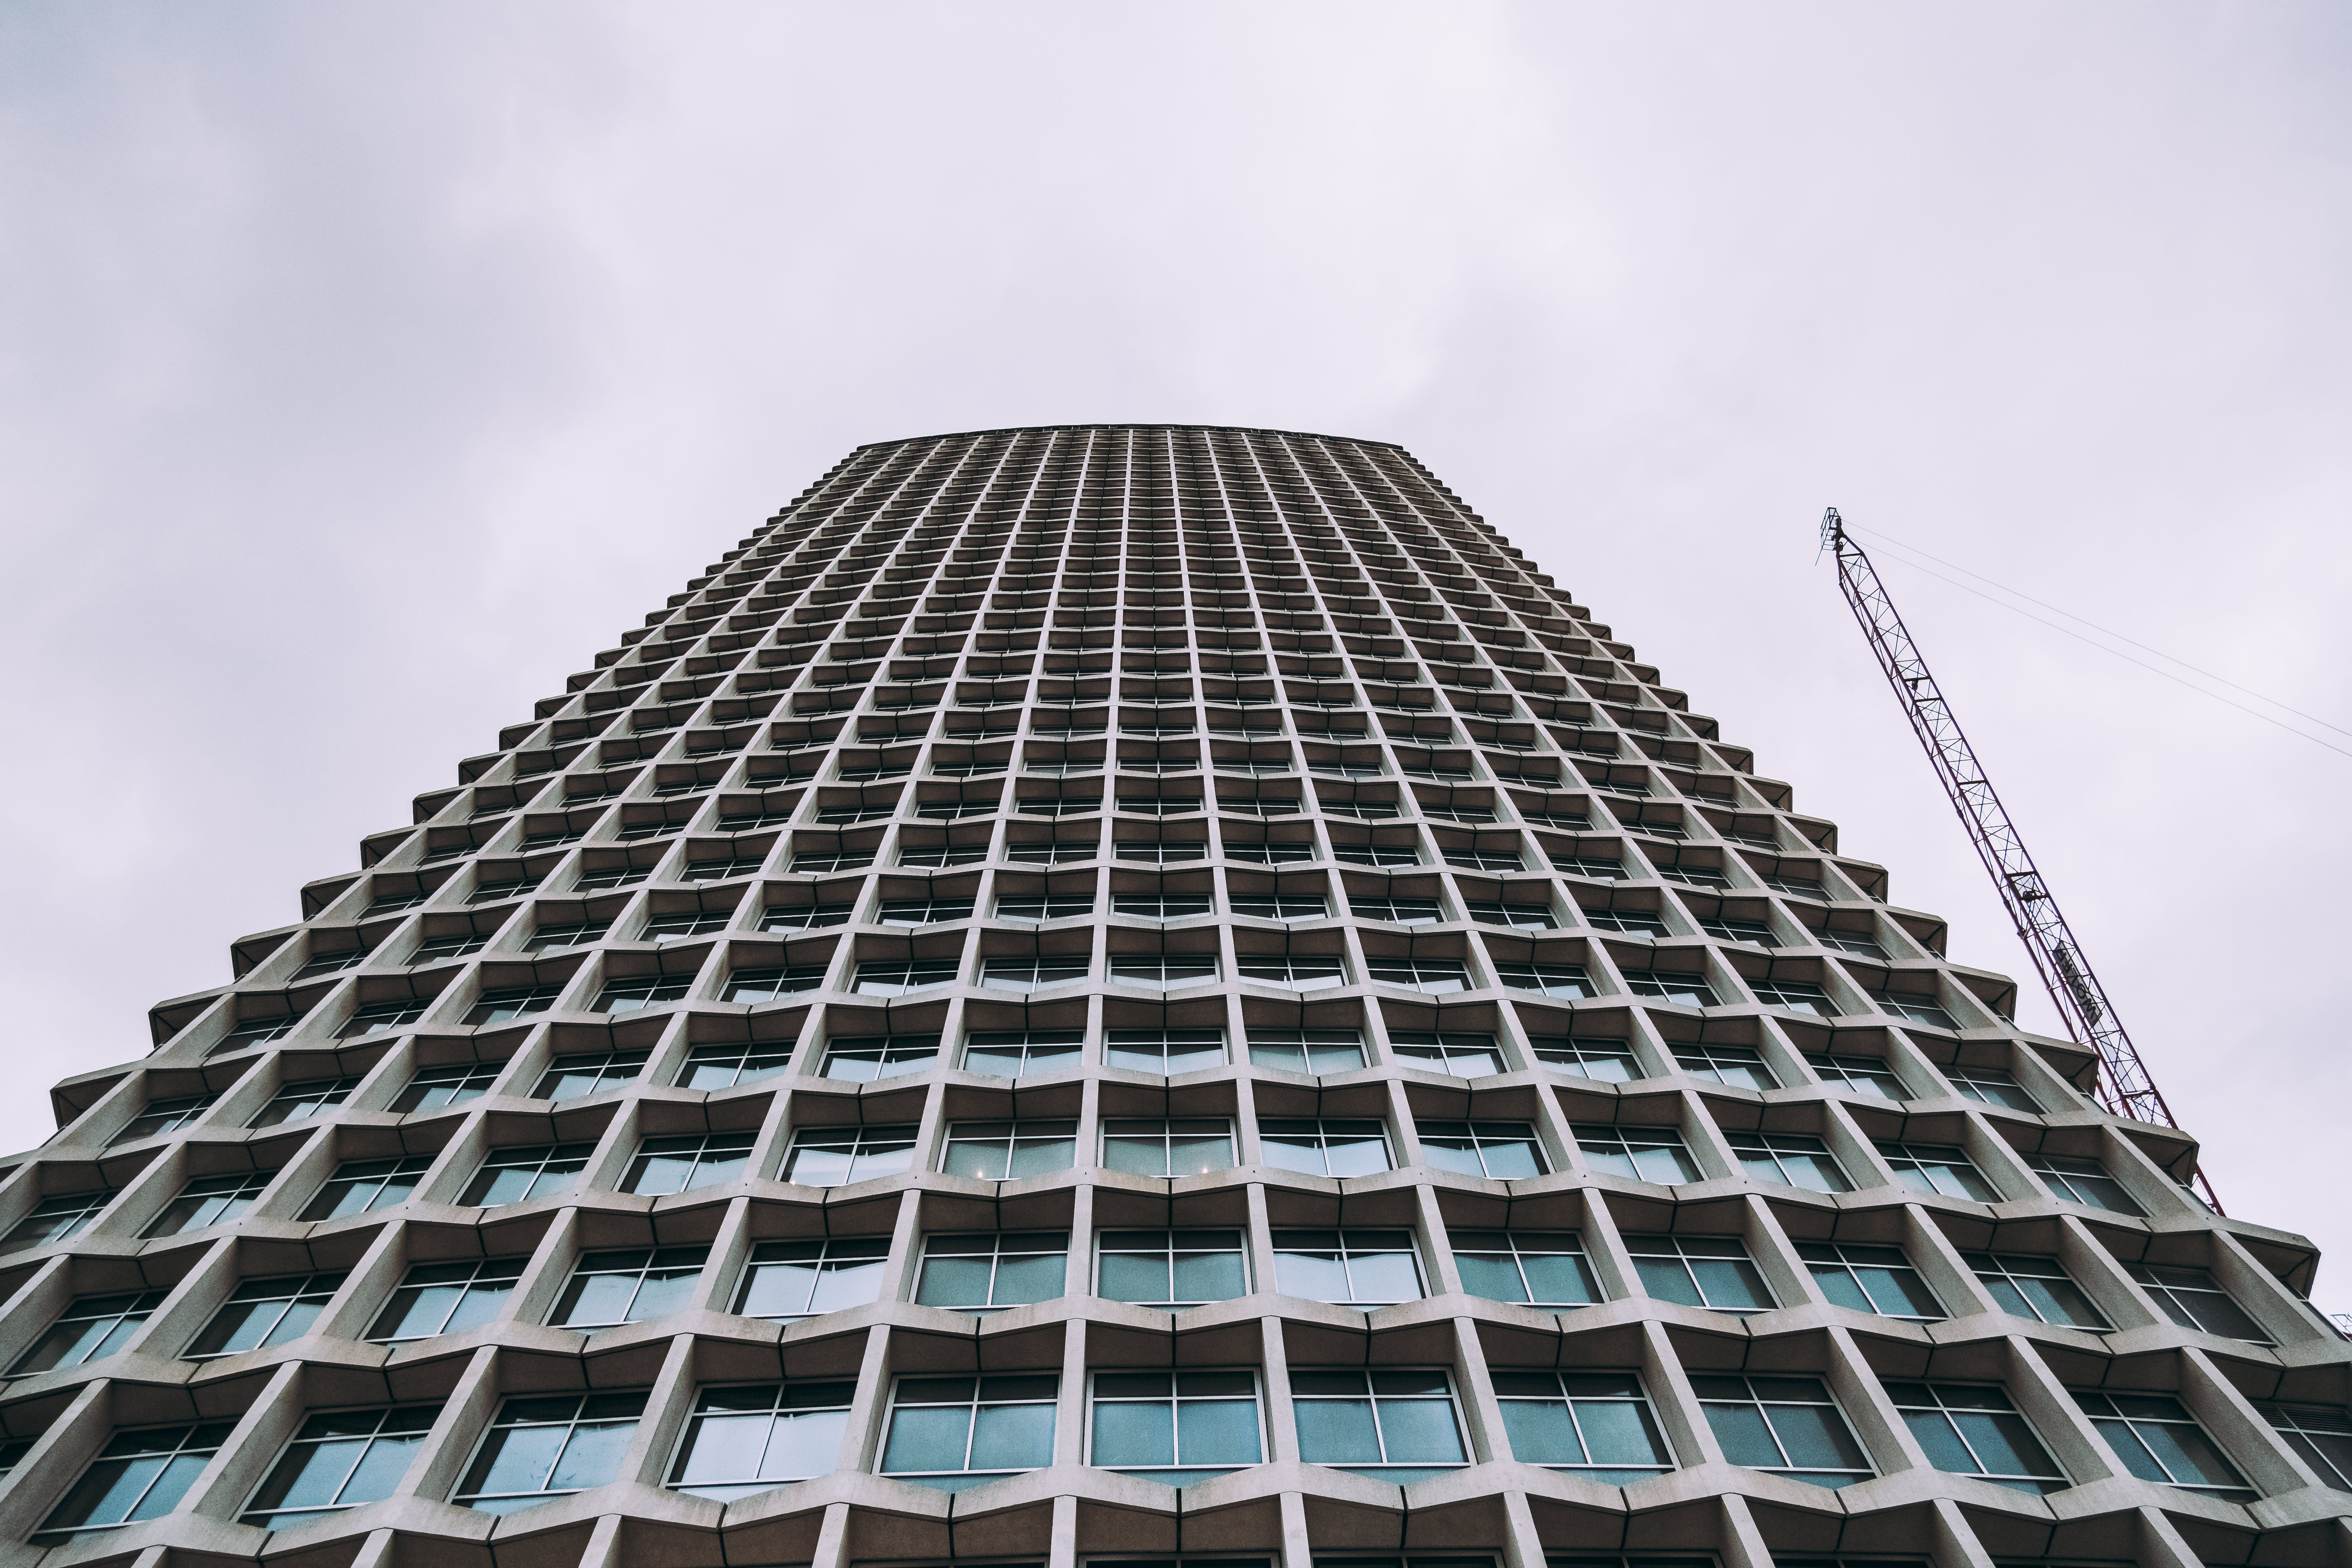 Worm's-eye View of Gray Building